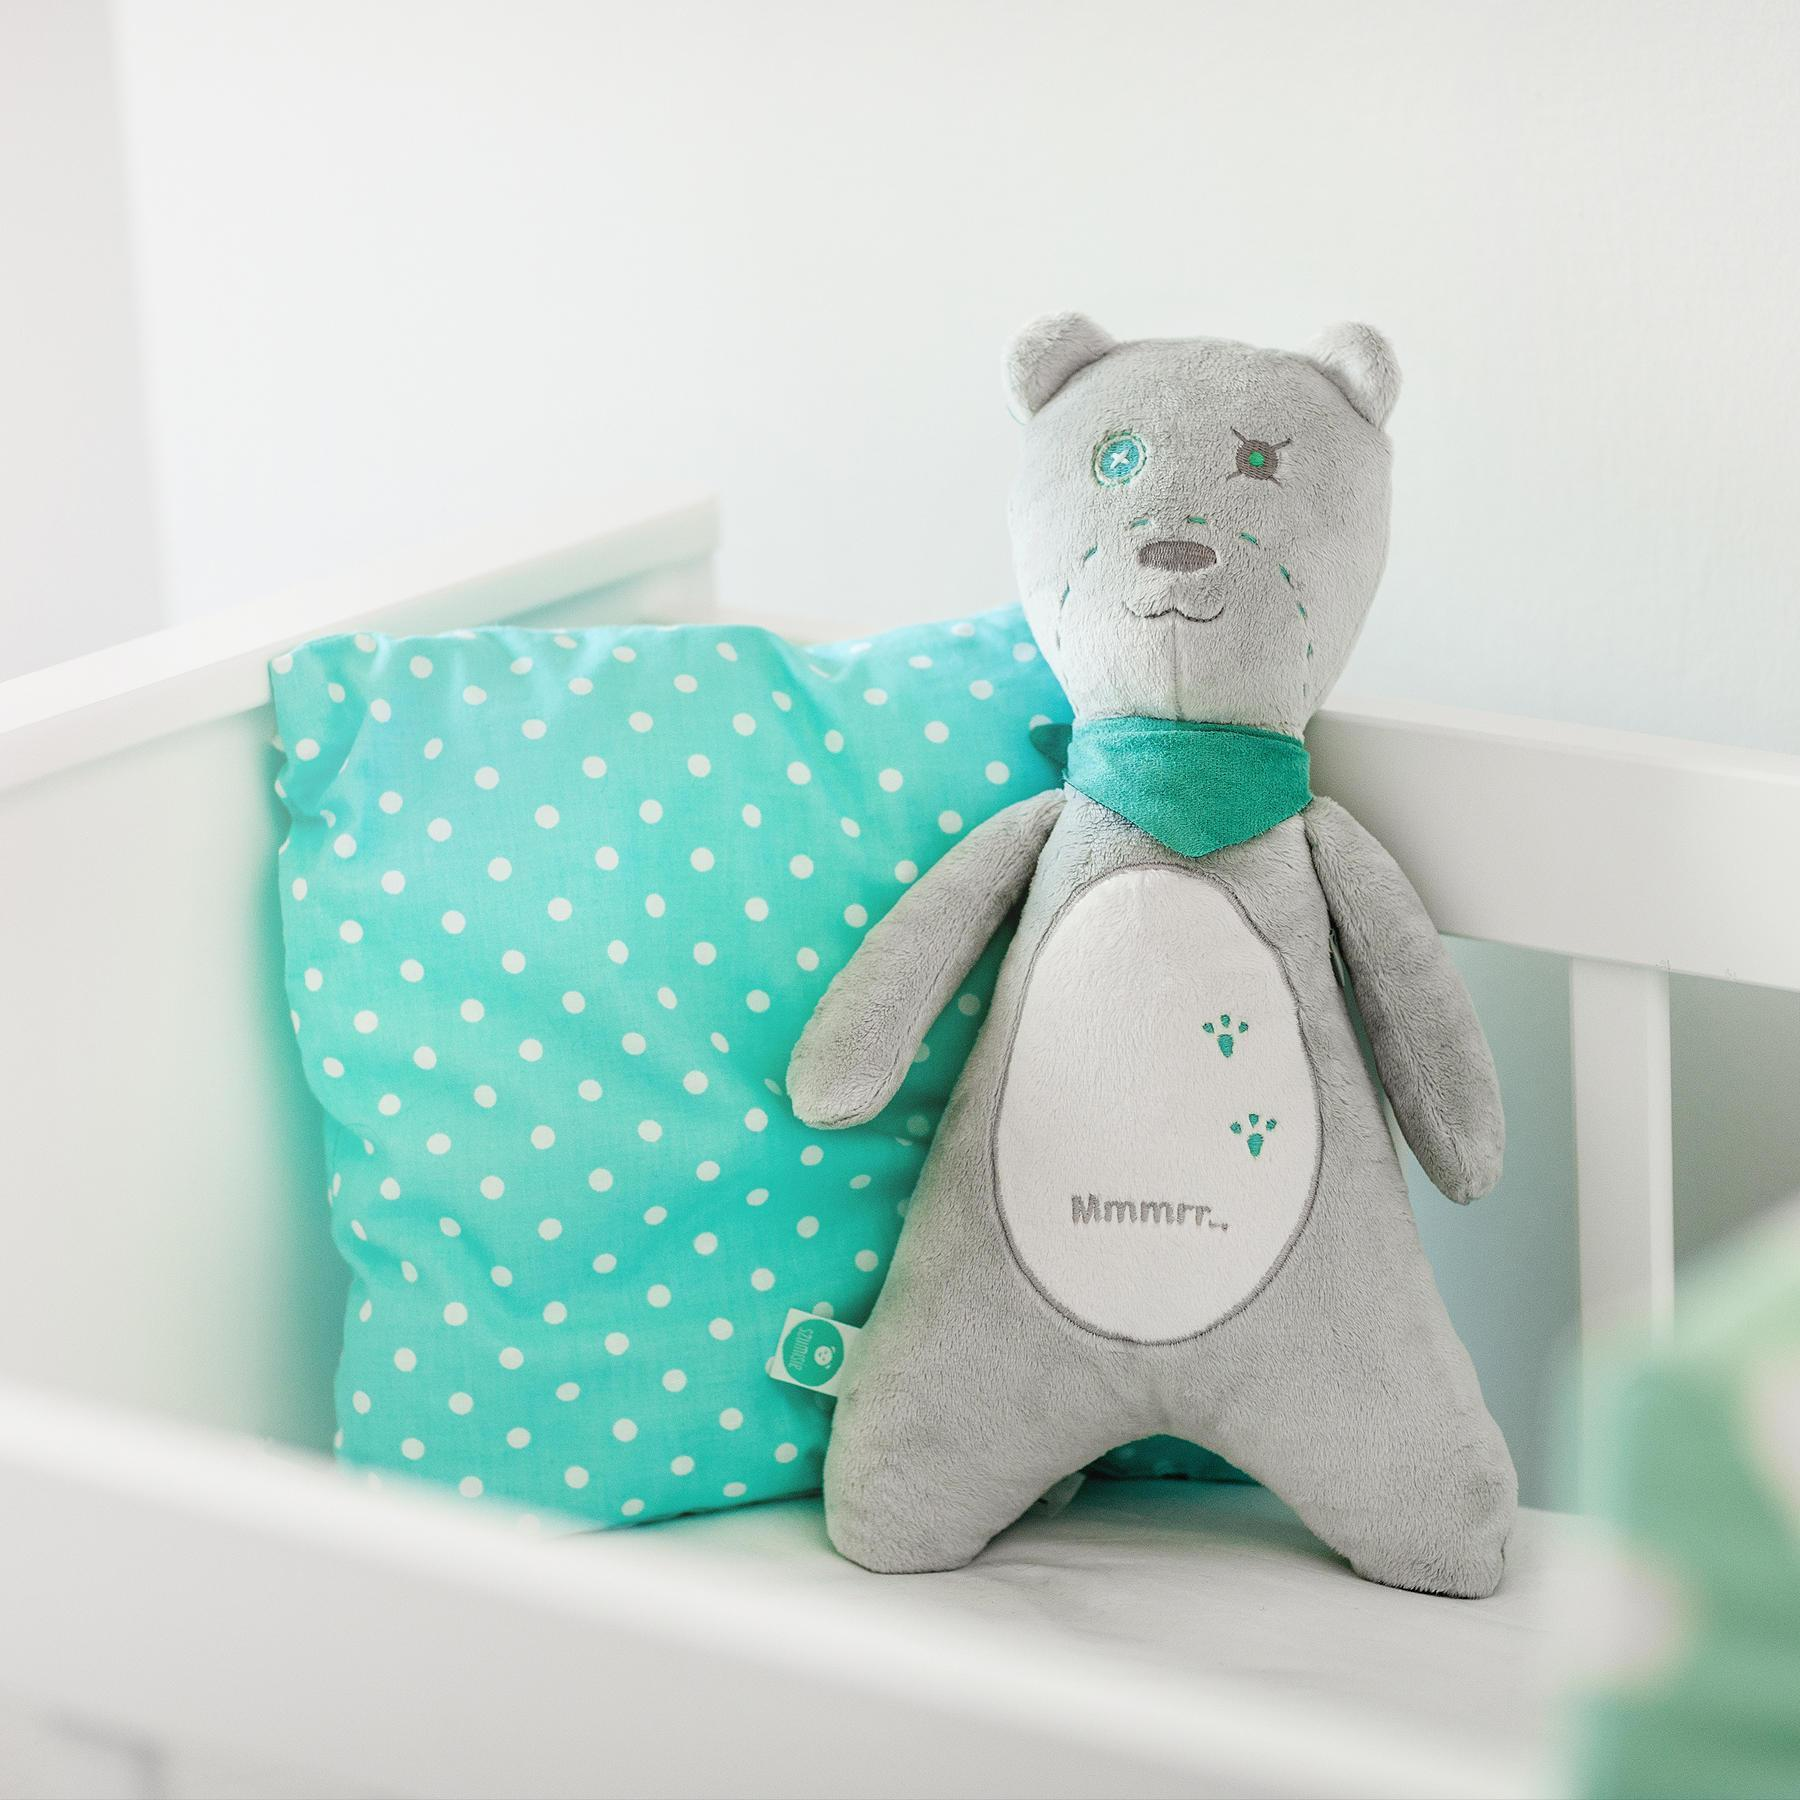 White Noise Baby Soother - myHummy - Ash Teddy Bear